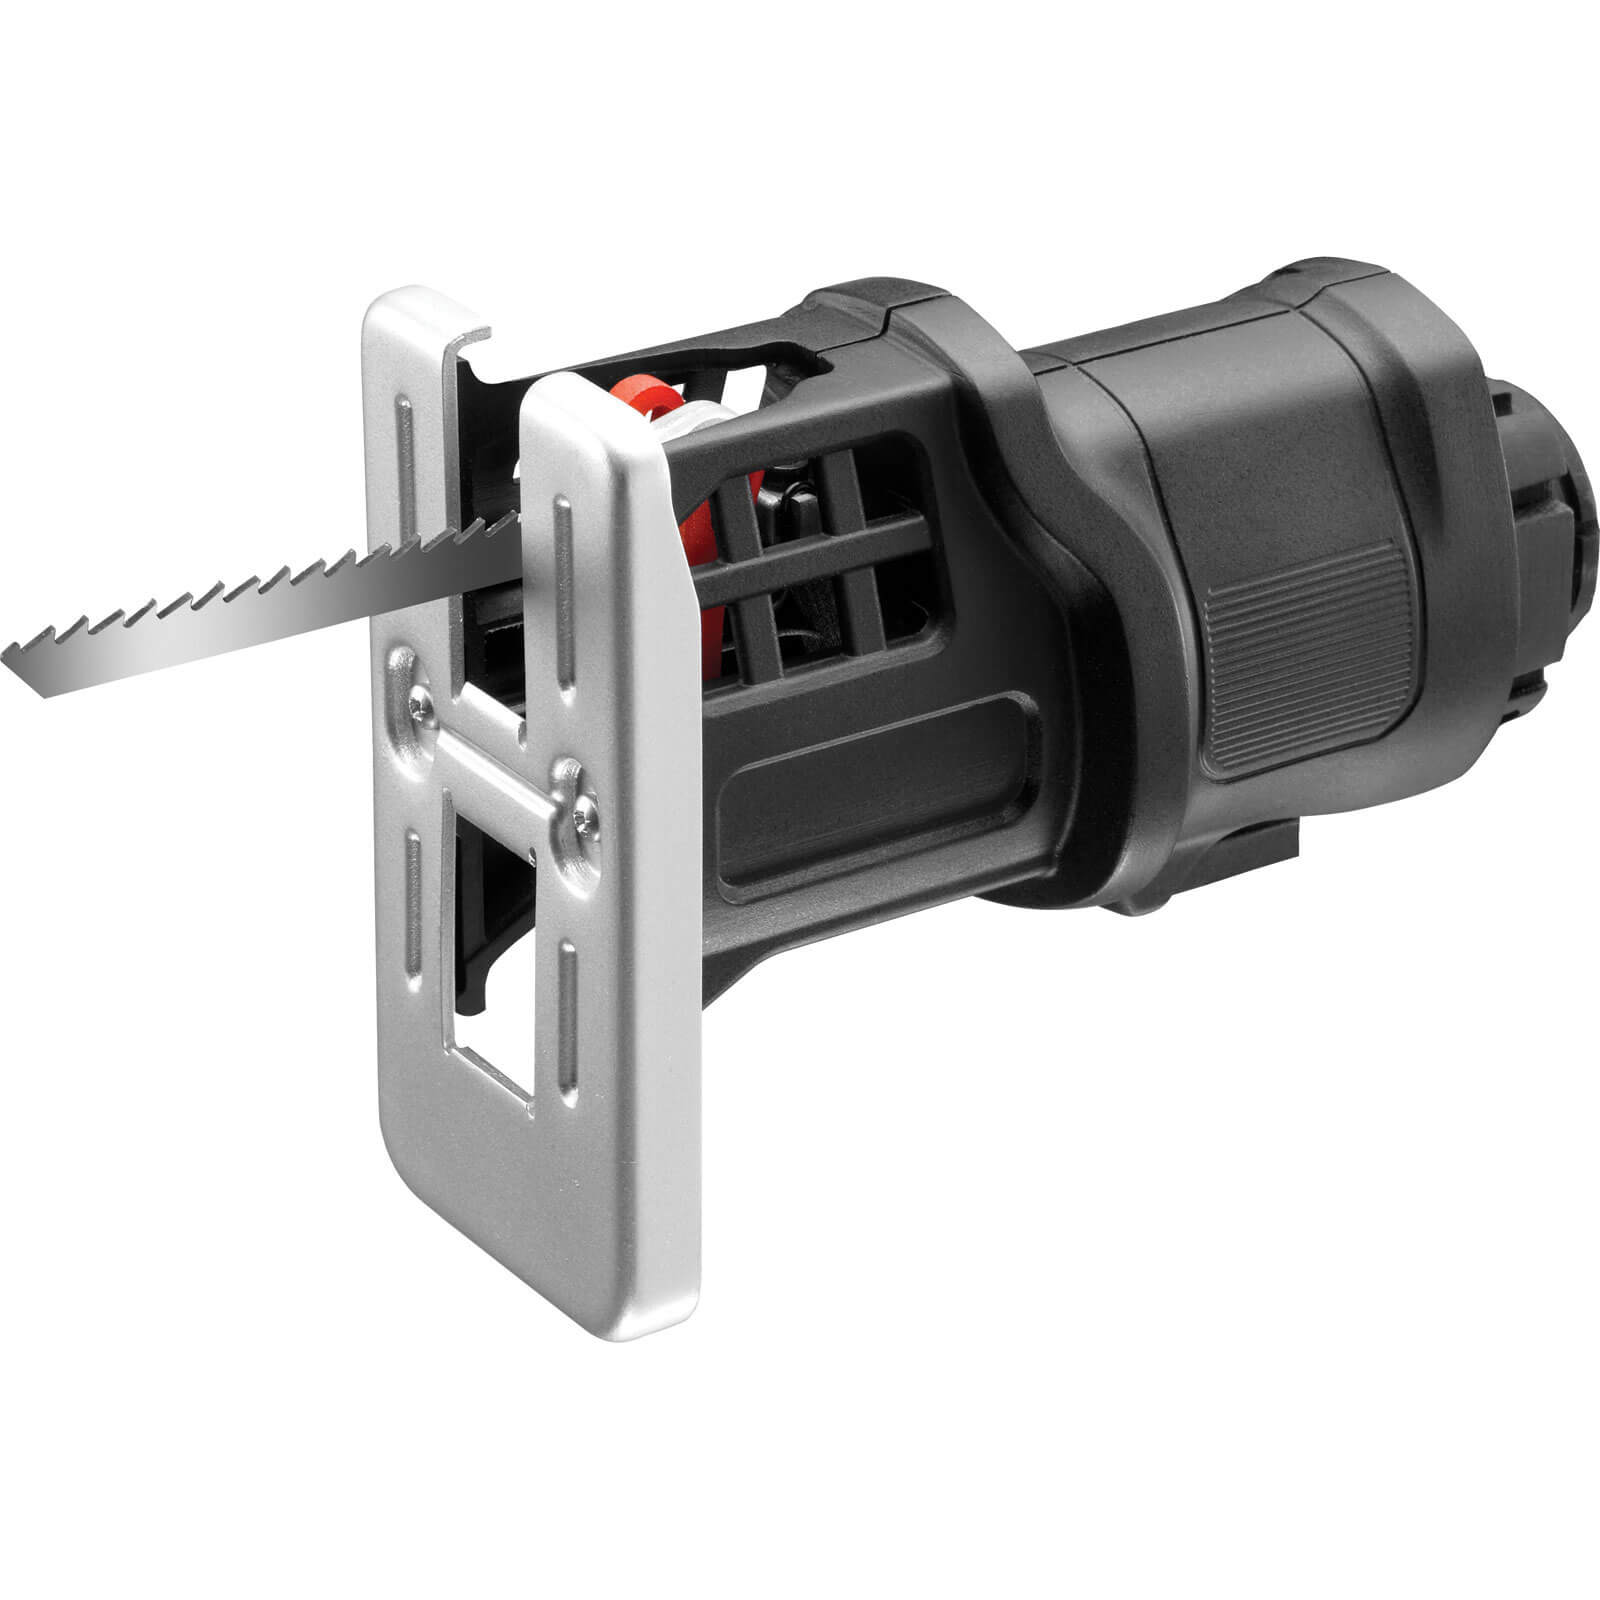 Black & Decker Jigsaw Attachment for MULTiEVO Multi Tool